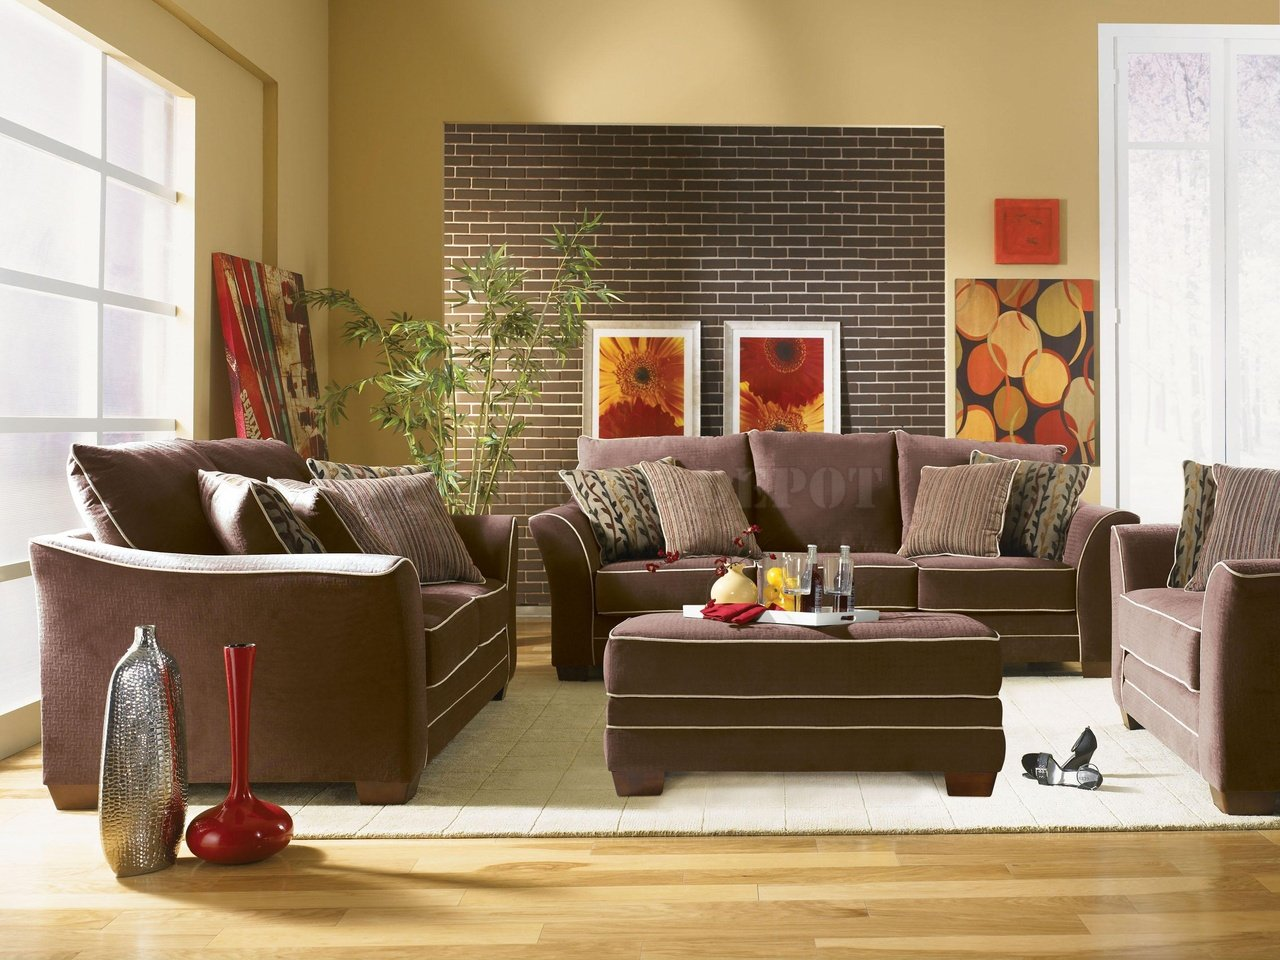 Interior design ideas interior designs home design ideas for Living room sofa ideas